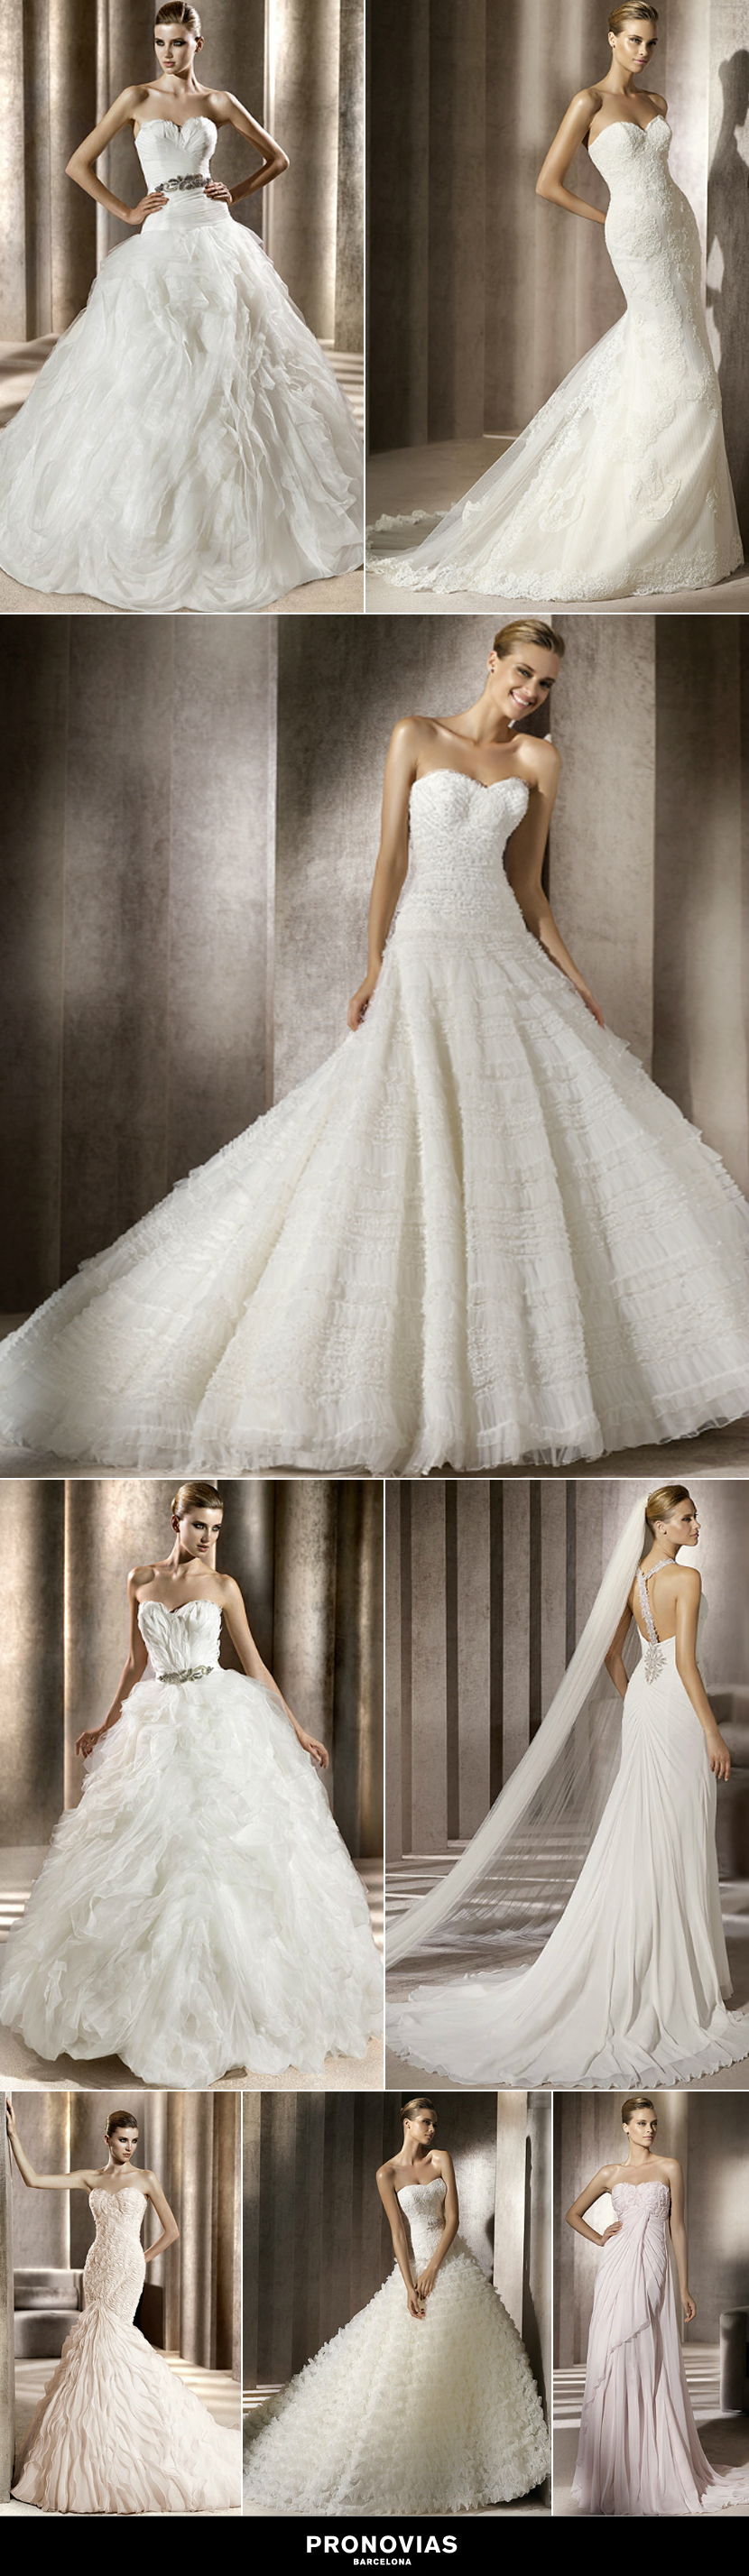 Pronovia gowns available at The Bridal Boutique in Norman, Oklahoma